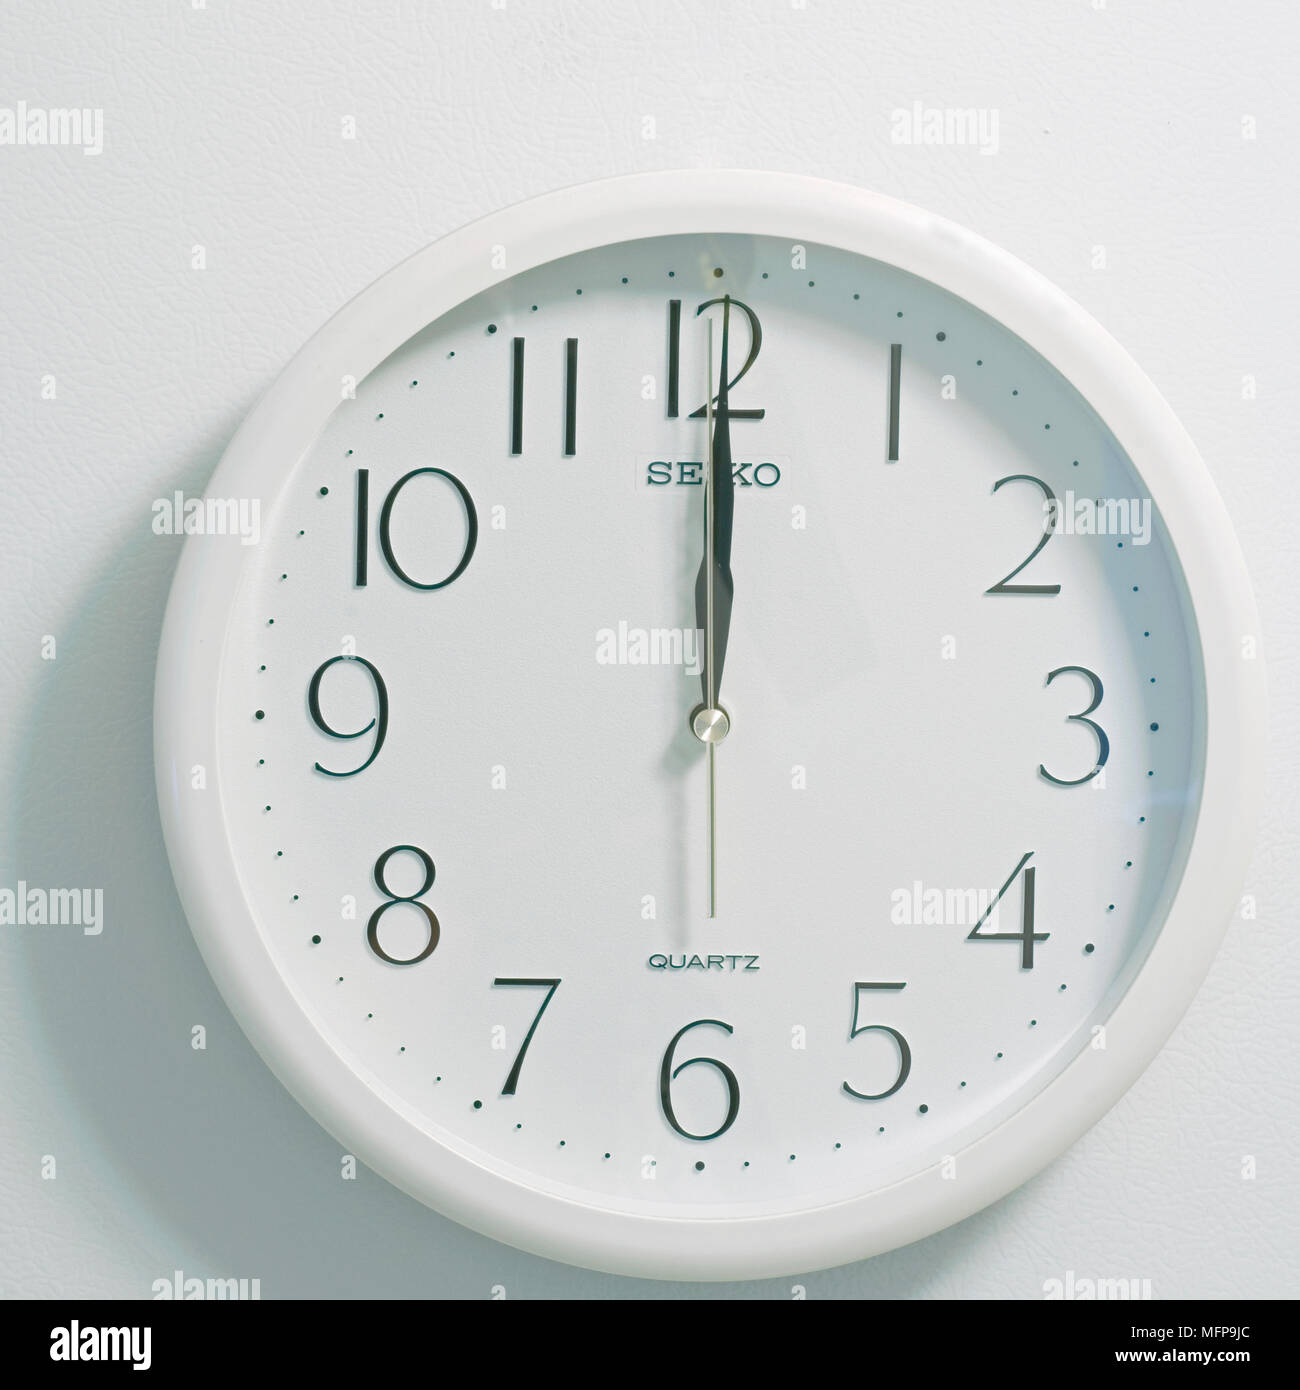 closeup of face of modern clock style showing round white and black dial at the time twelve o'clock noon or midnight on white background - Stock Image